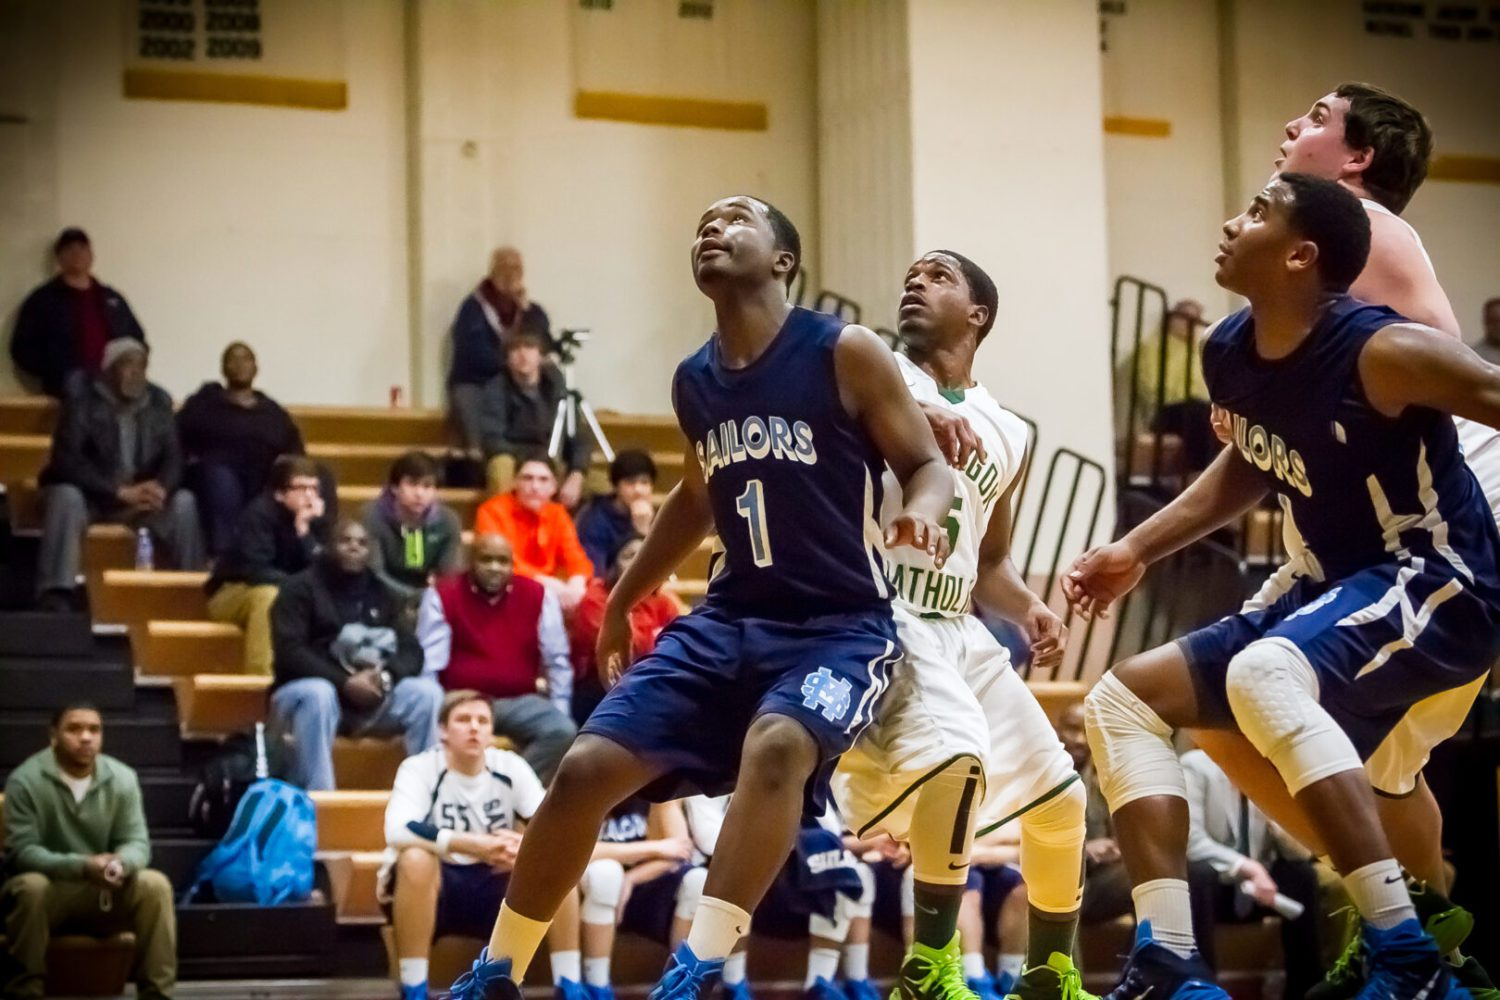 Kobe Burse carries Mona Shores to victory over Muskegon Catholic in boys basketball action